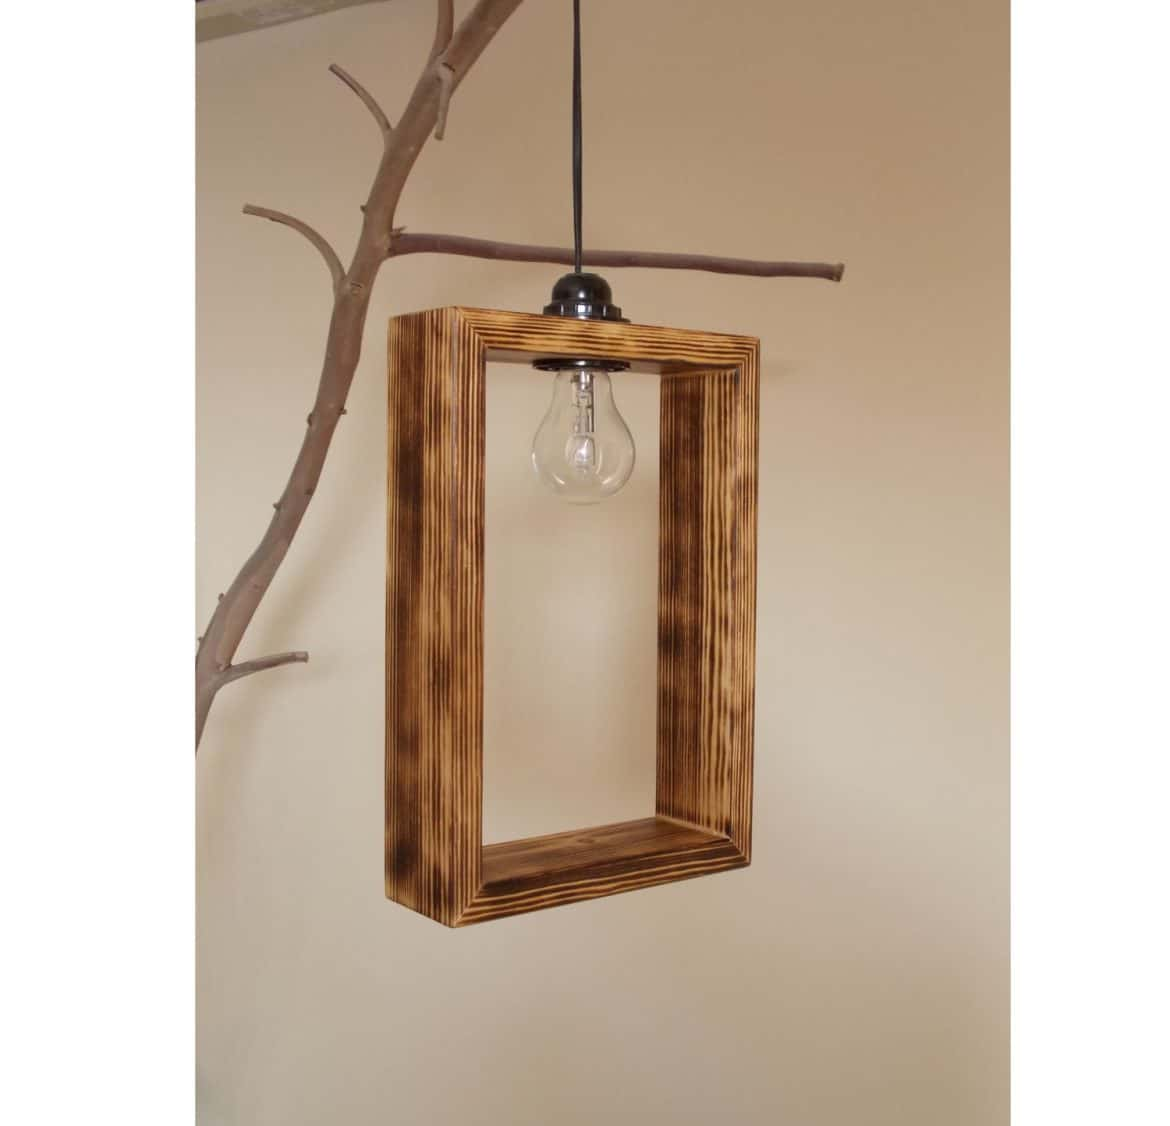 Wooden Lighting Pendants Cute Minimal Wooden Pendant Lighting Shade Id Lights